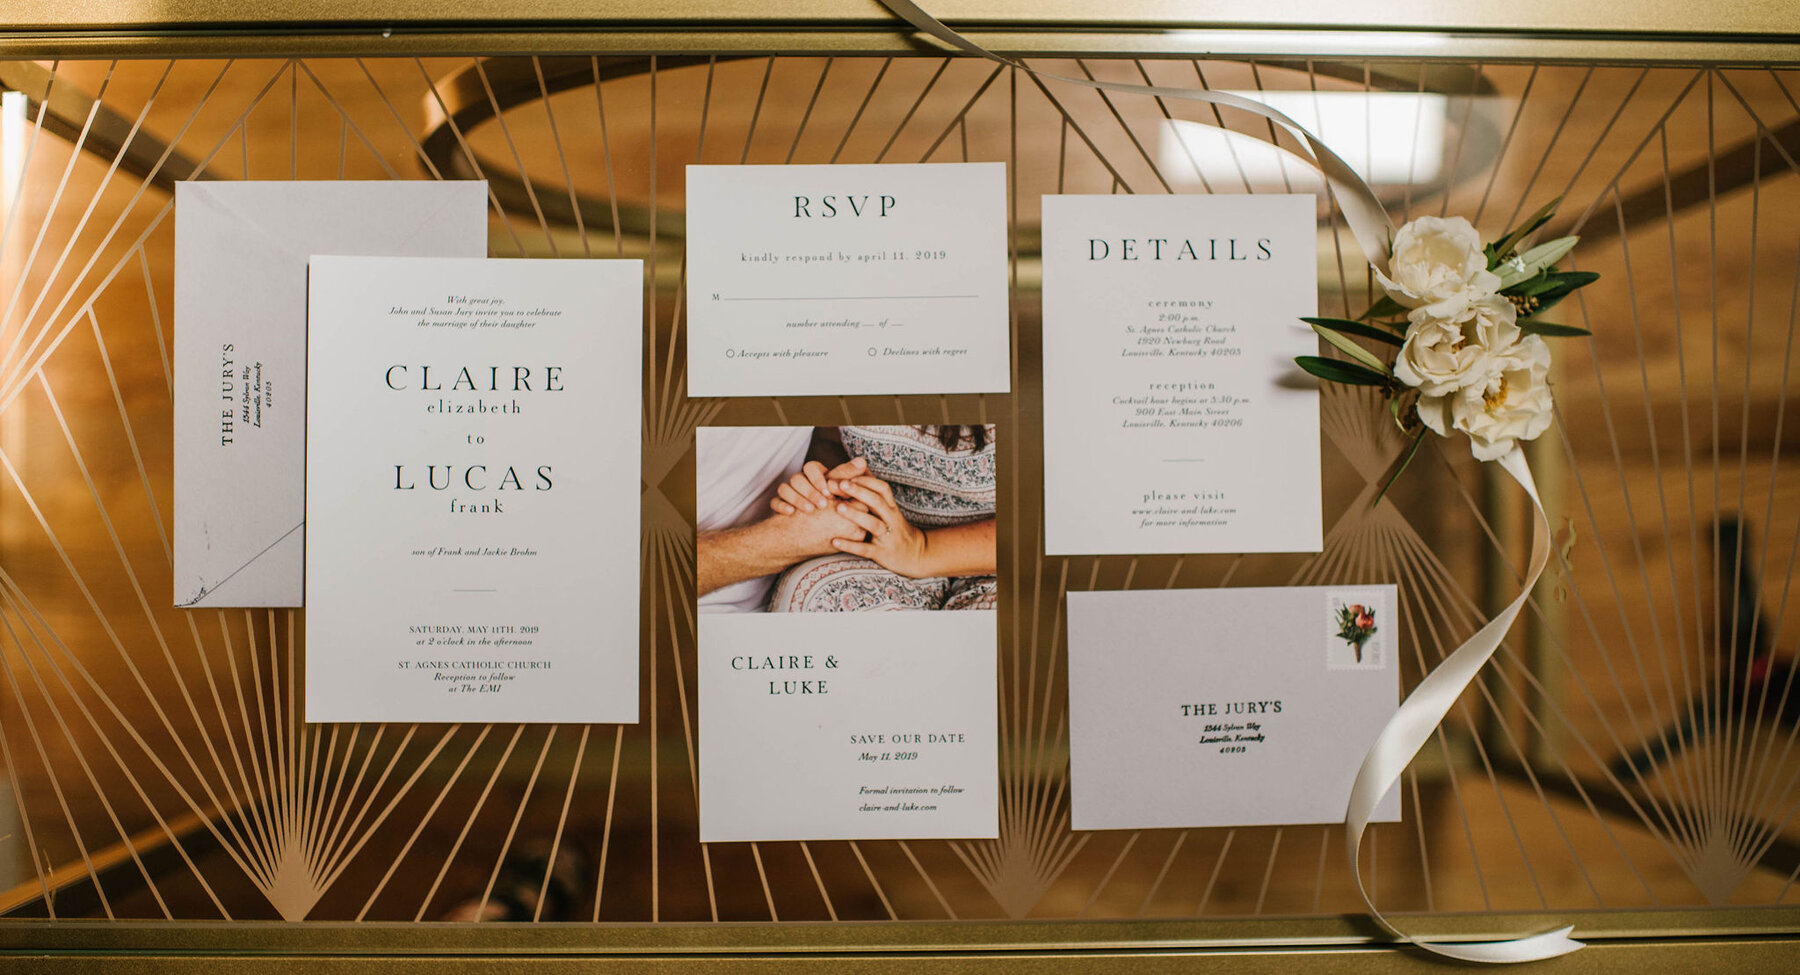 Clair-Jury-invitations-love-hunters.jpg